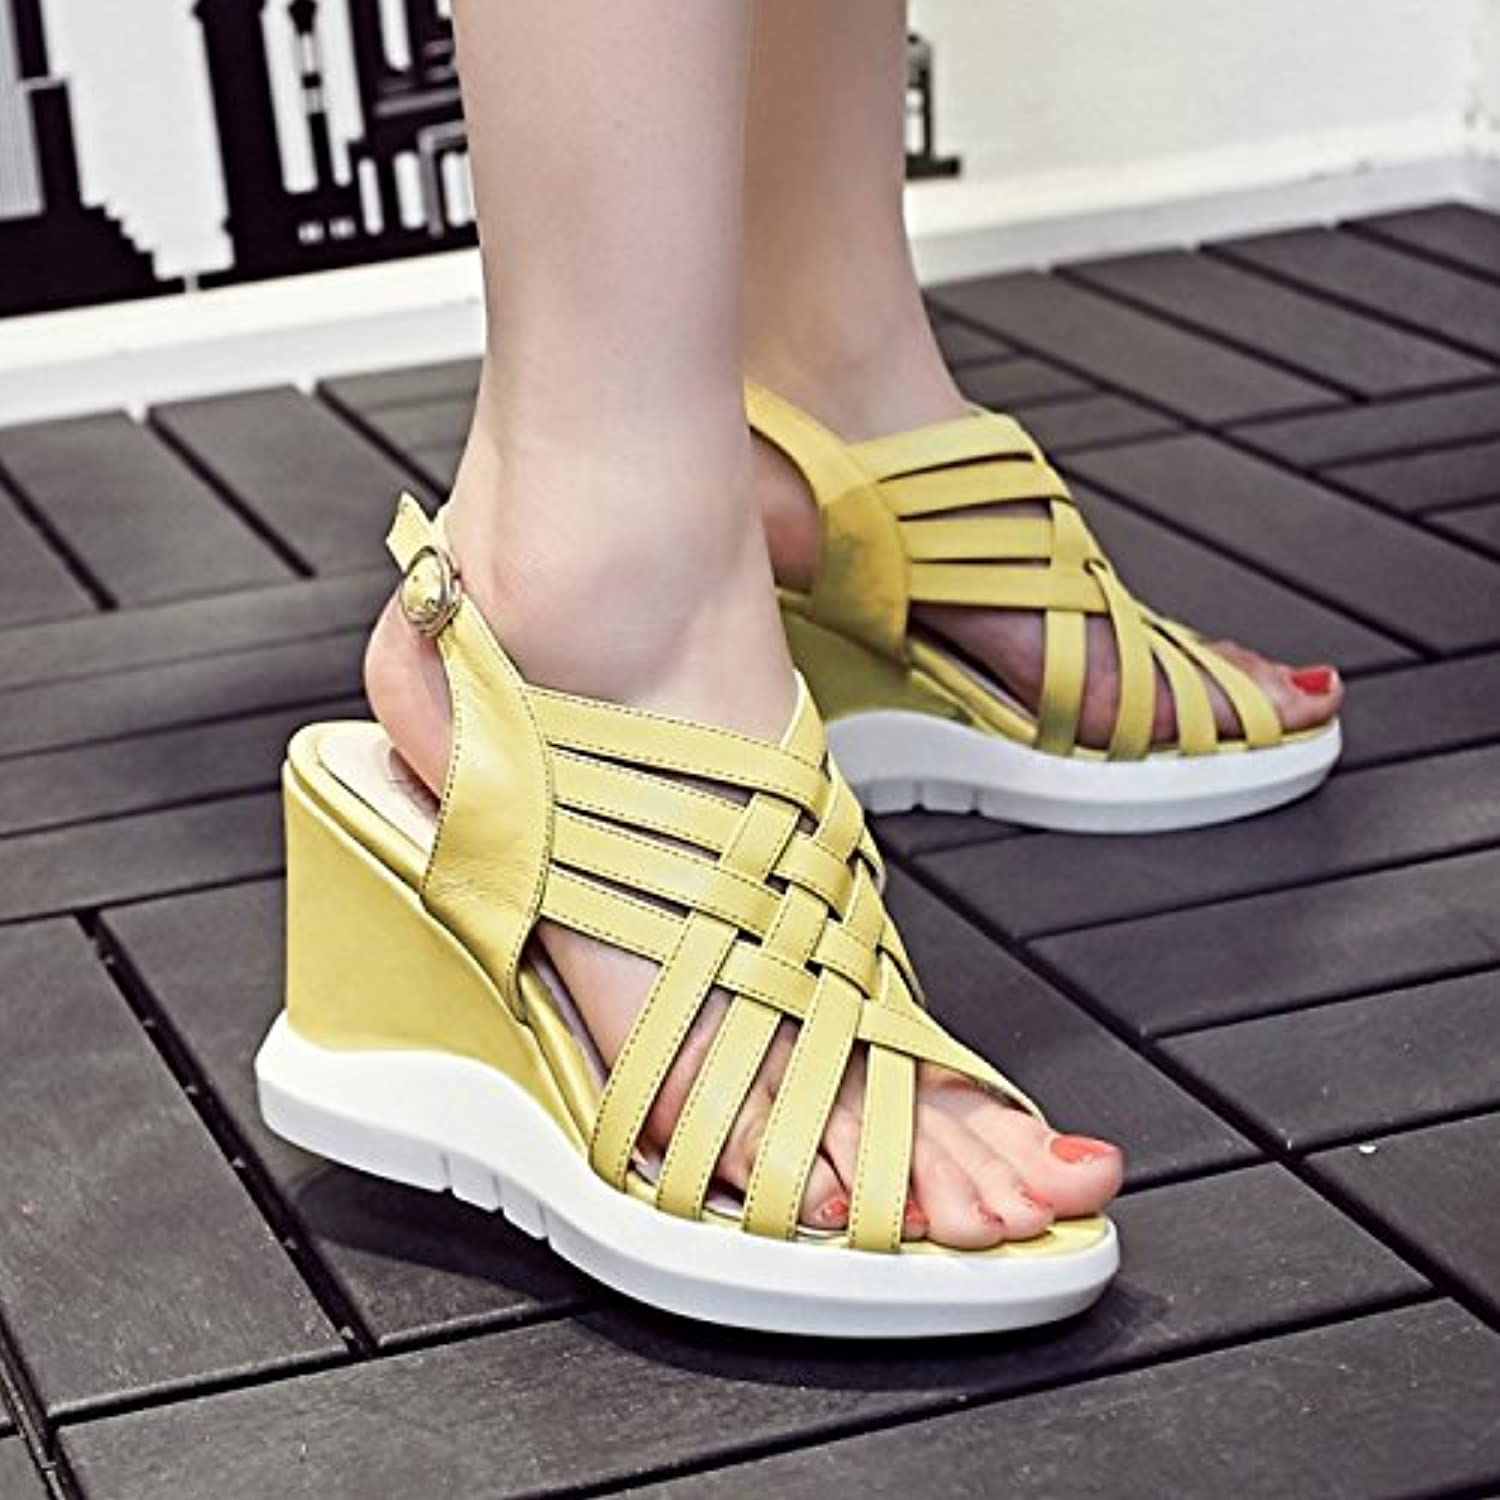 cbc6876431bb Female Cow Face with a Combination of Wedge Sandals Fashion Fashion Fashion  Female Sandals B0752VKK8S Parent